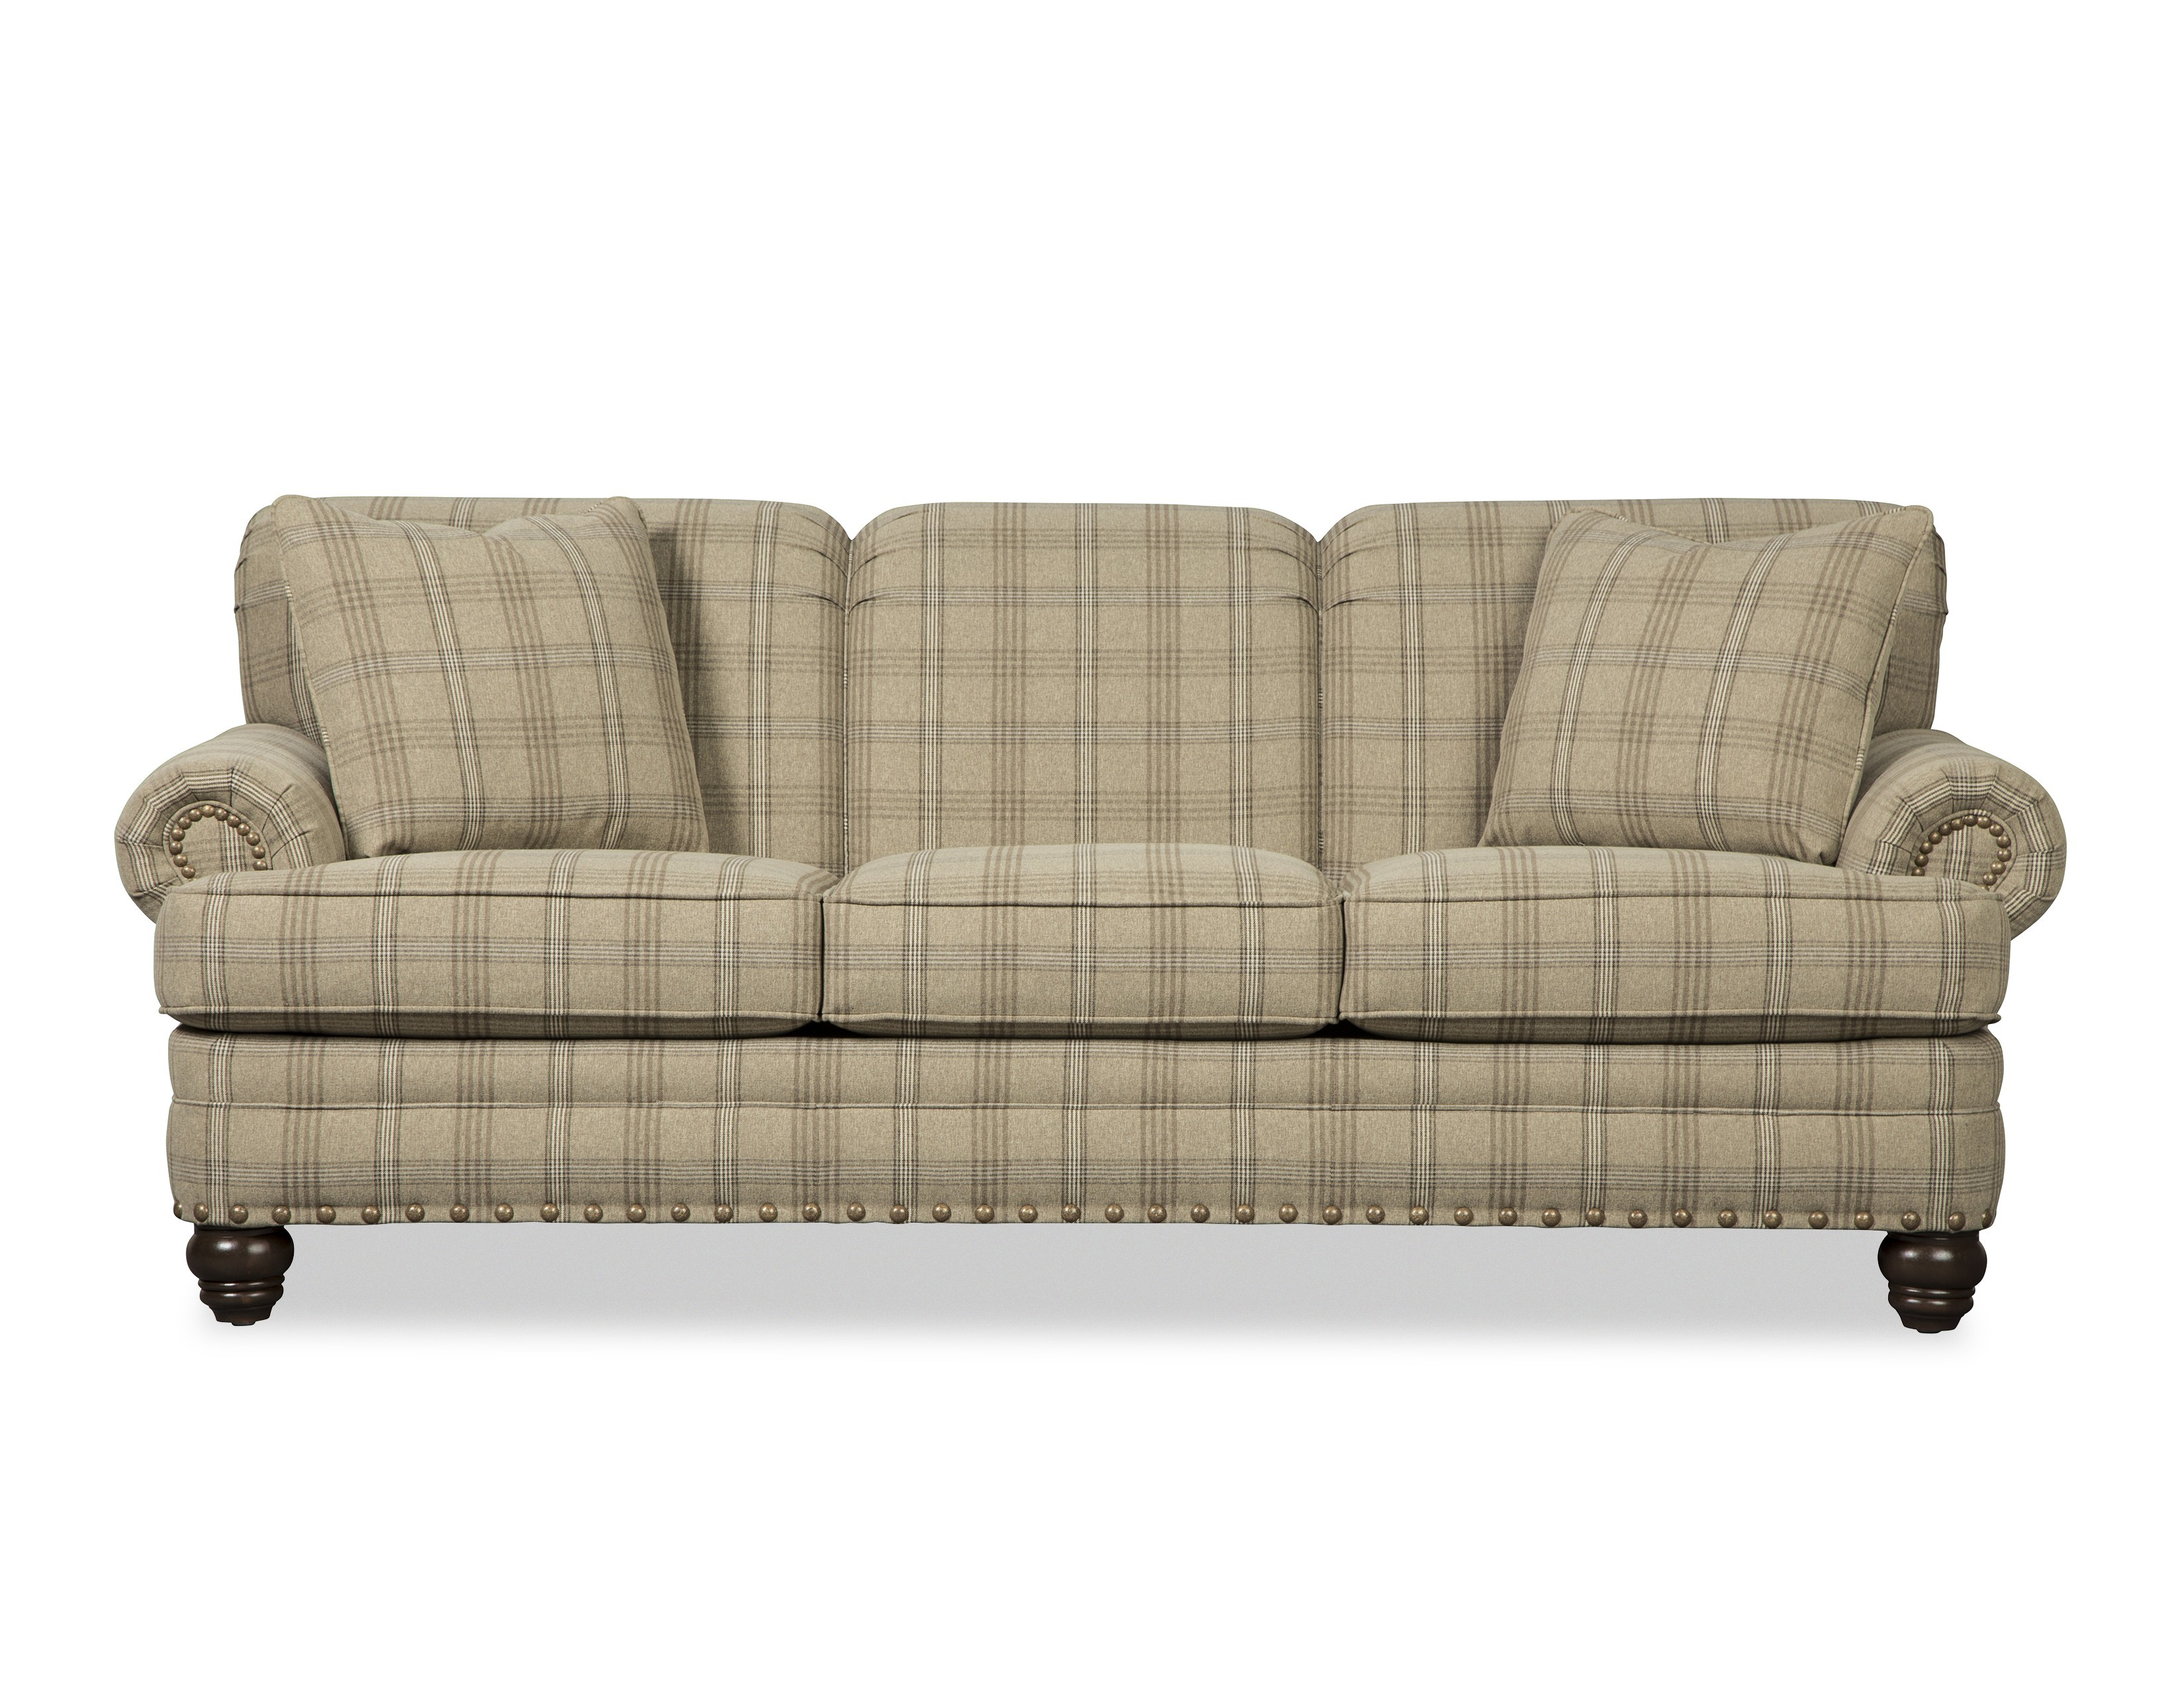 Sample Furniture SF-1030-20 Cover/Finish Field Avalon Collection Field